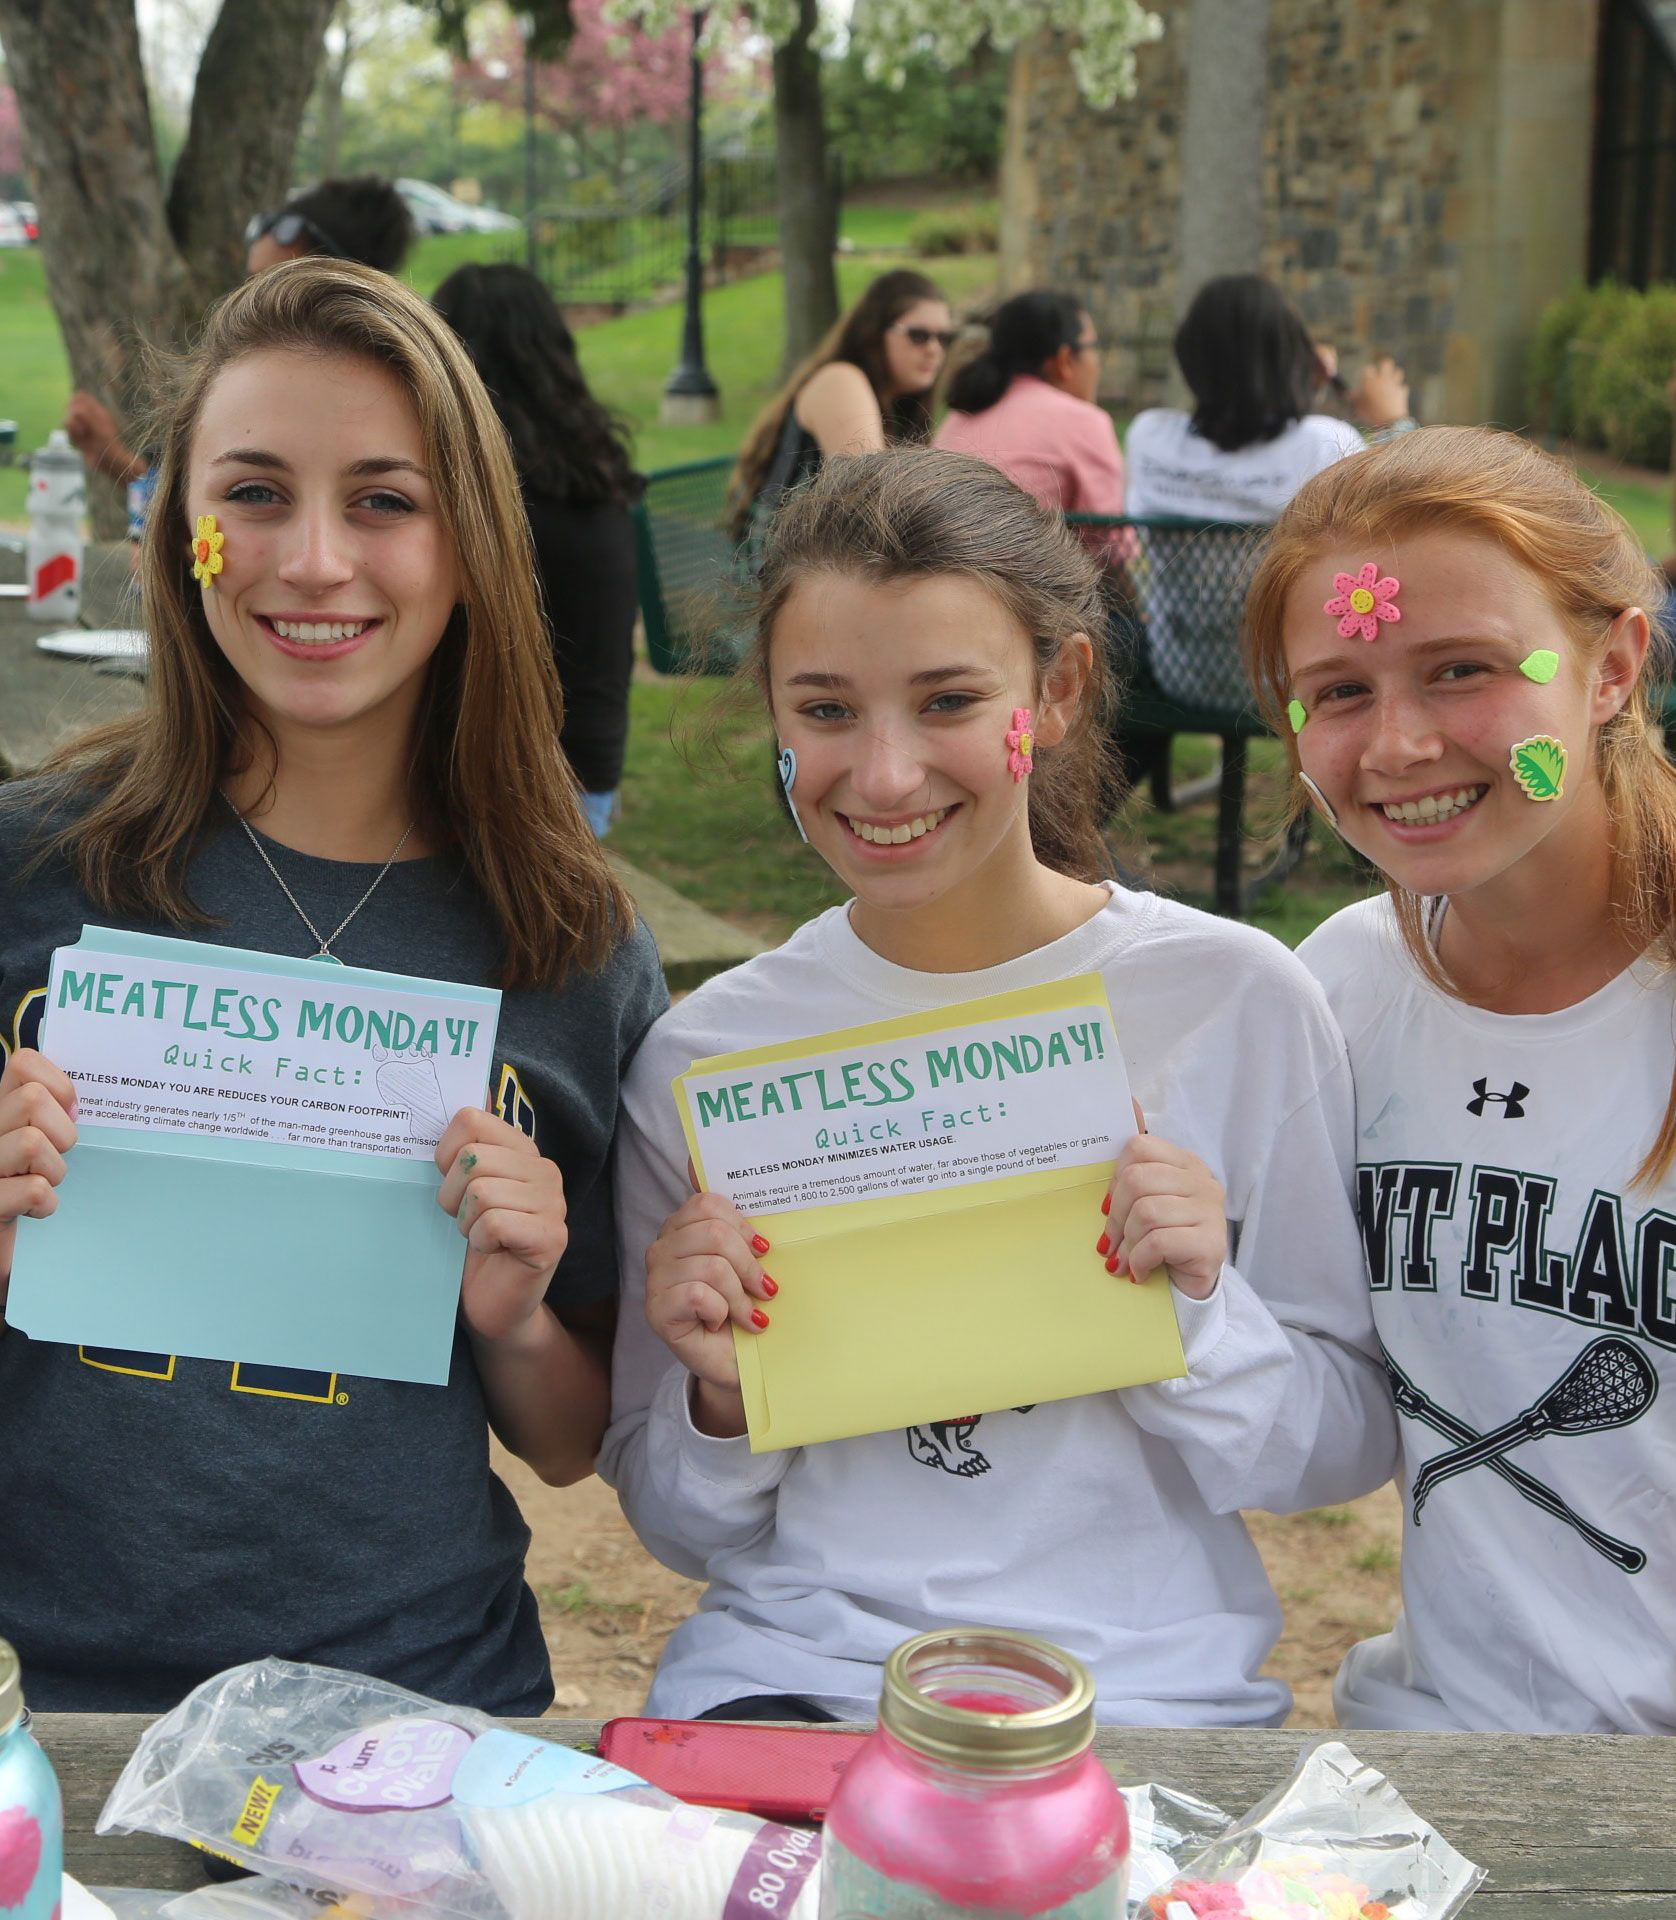 Students share Meatless Monday facts during the Eco Fair